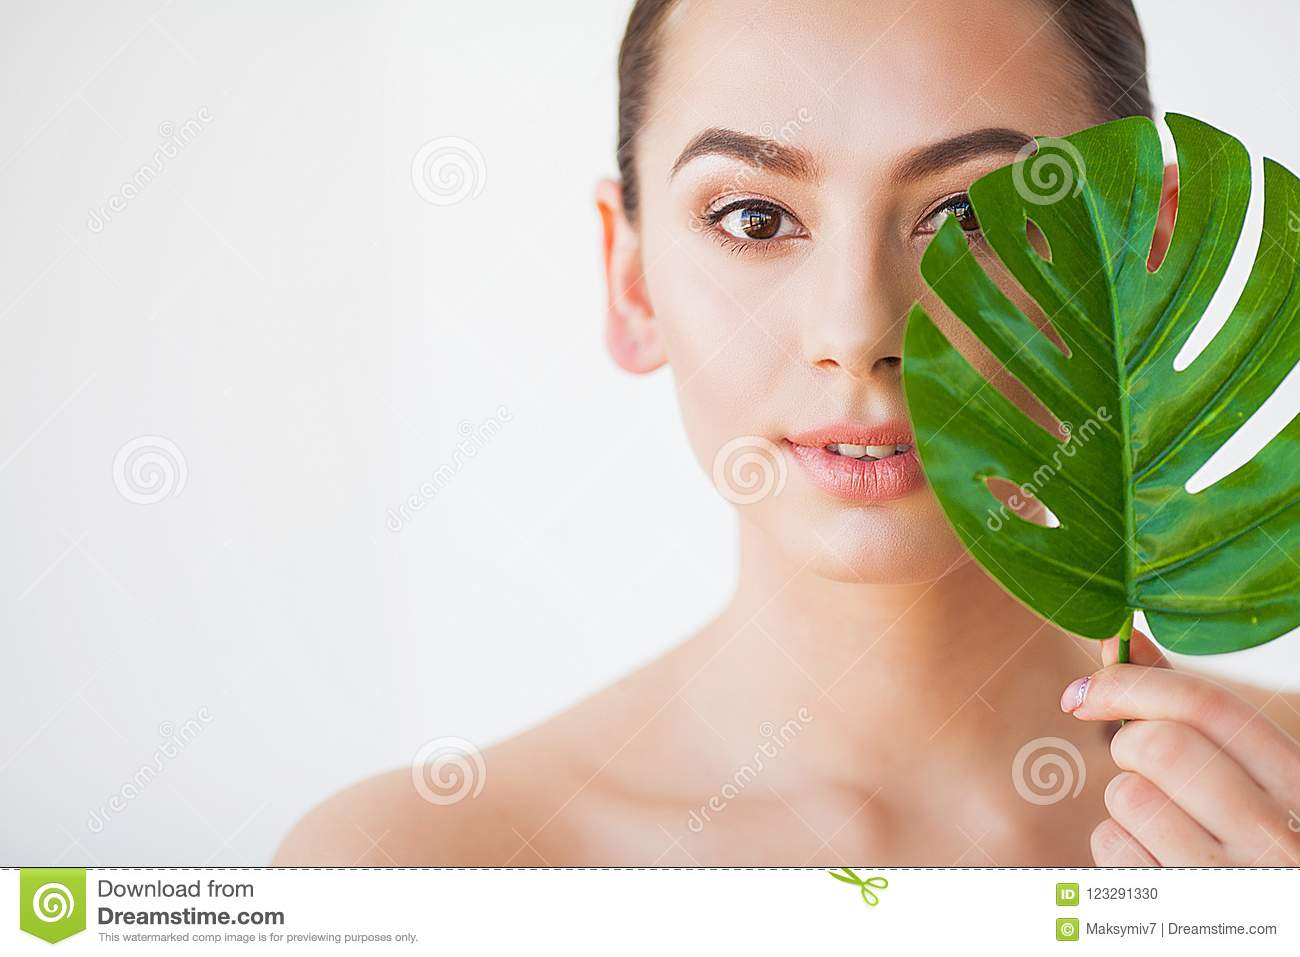 Skincare Beautiful Woman Portrait On White Background With Clean Skin And Green Leaf In Hand Stock Photo Image Of Plant Extension 123291330